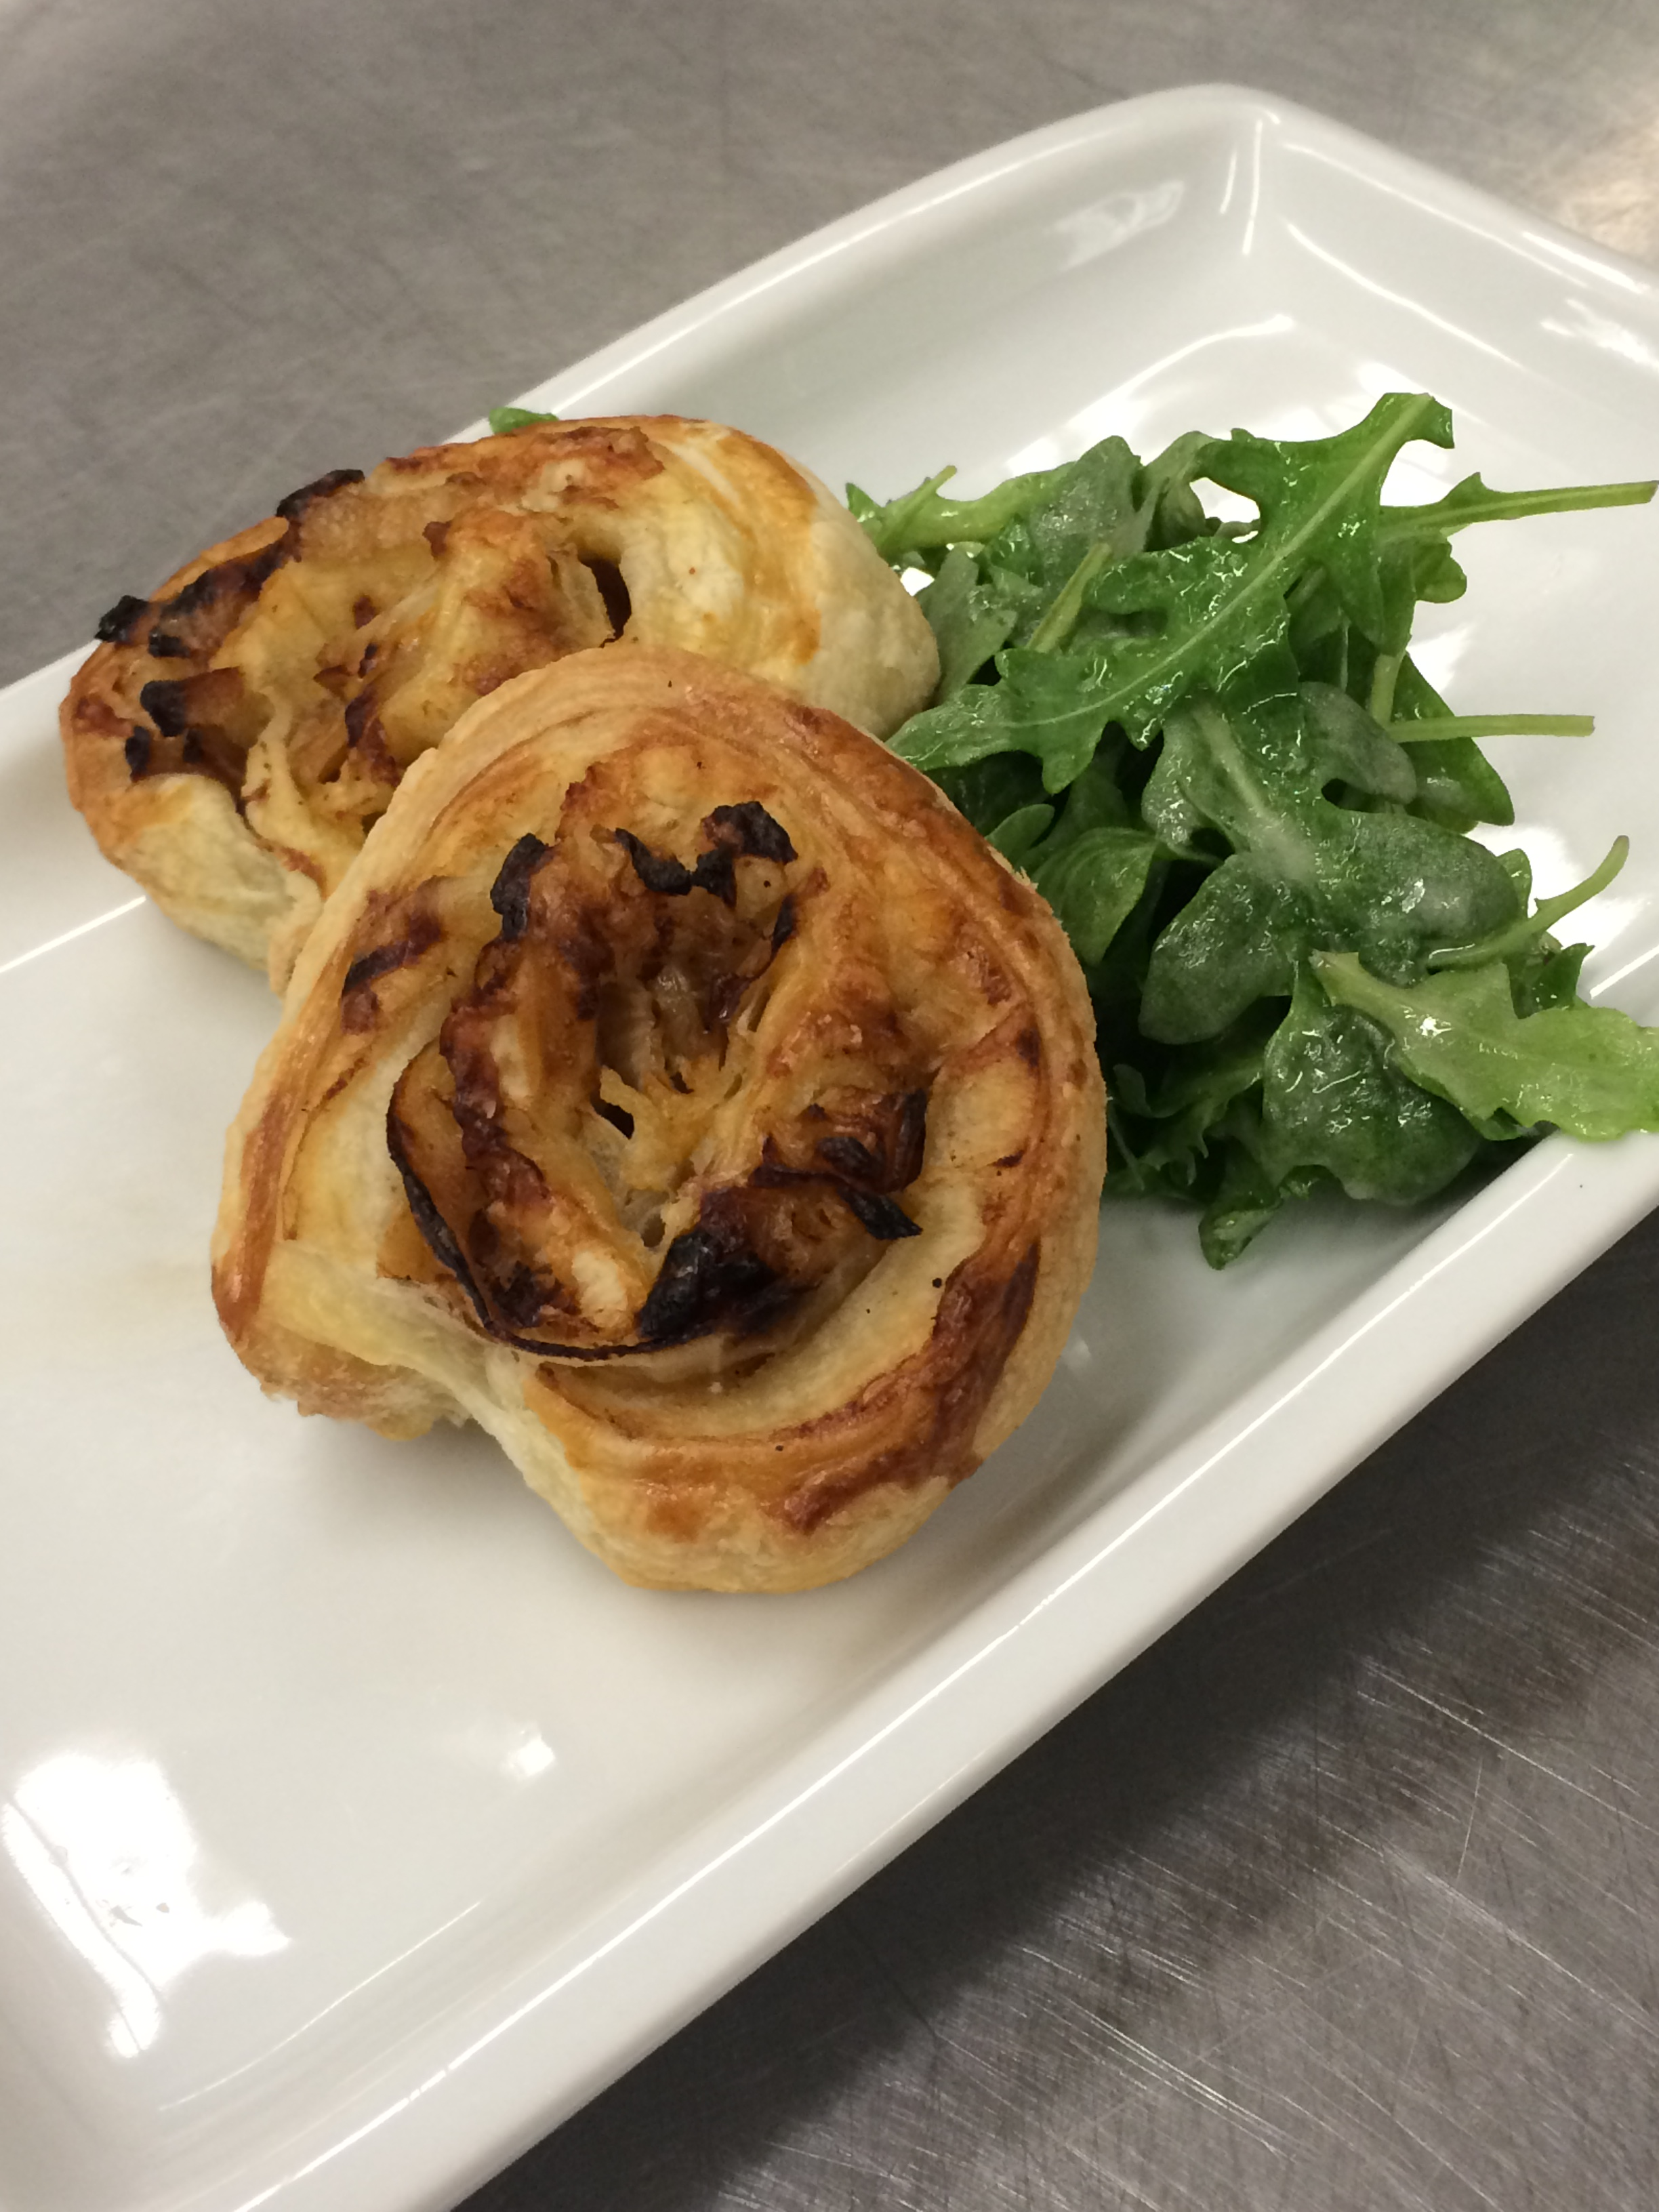 French Onion Soup Inspired Small plates: puff pastry spiral with caramelized onions and gruyere cheese.  Gourmet Small Plates by LeCroissant Catering & Events Gourmet Small Plates by LeCroissant Catering & Events 2015 07 30 17